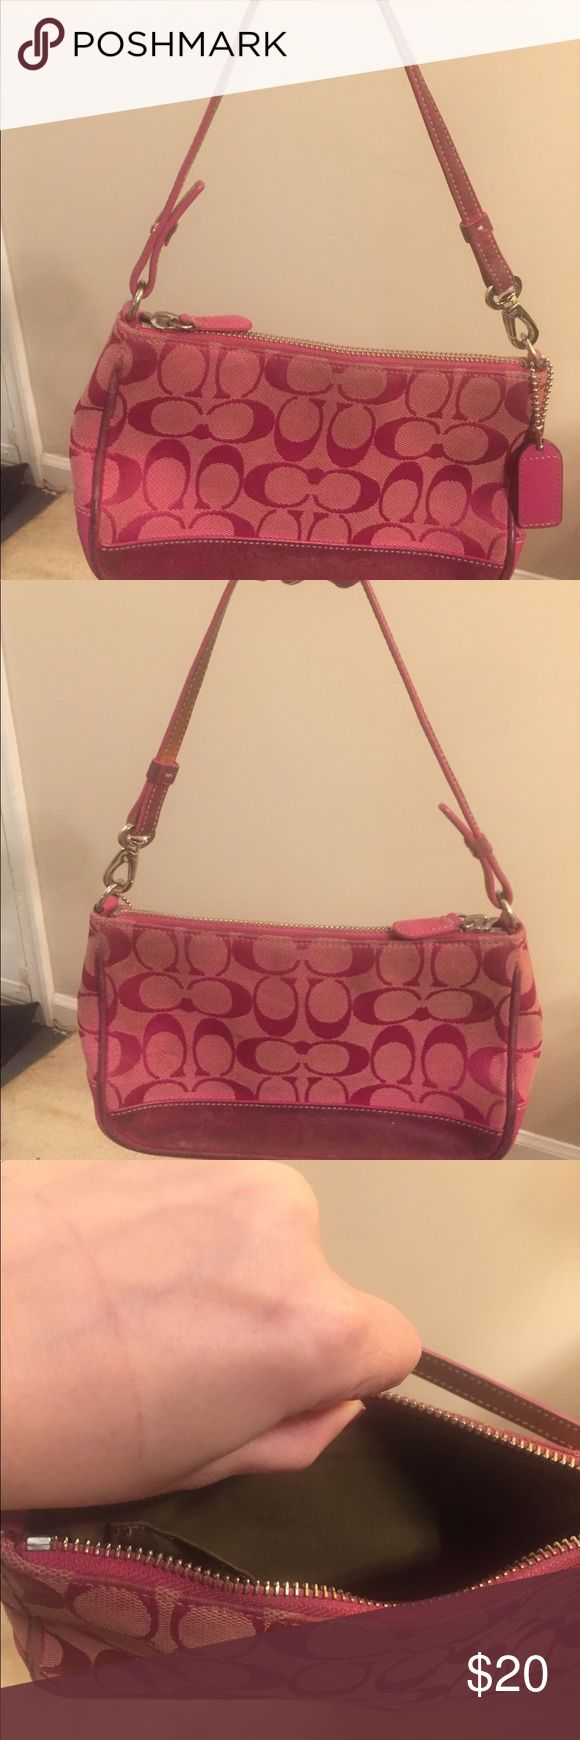 Pink coach purse Gently worn pink small coach purse Coach Bags Shoulder Bags